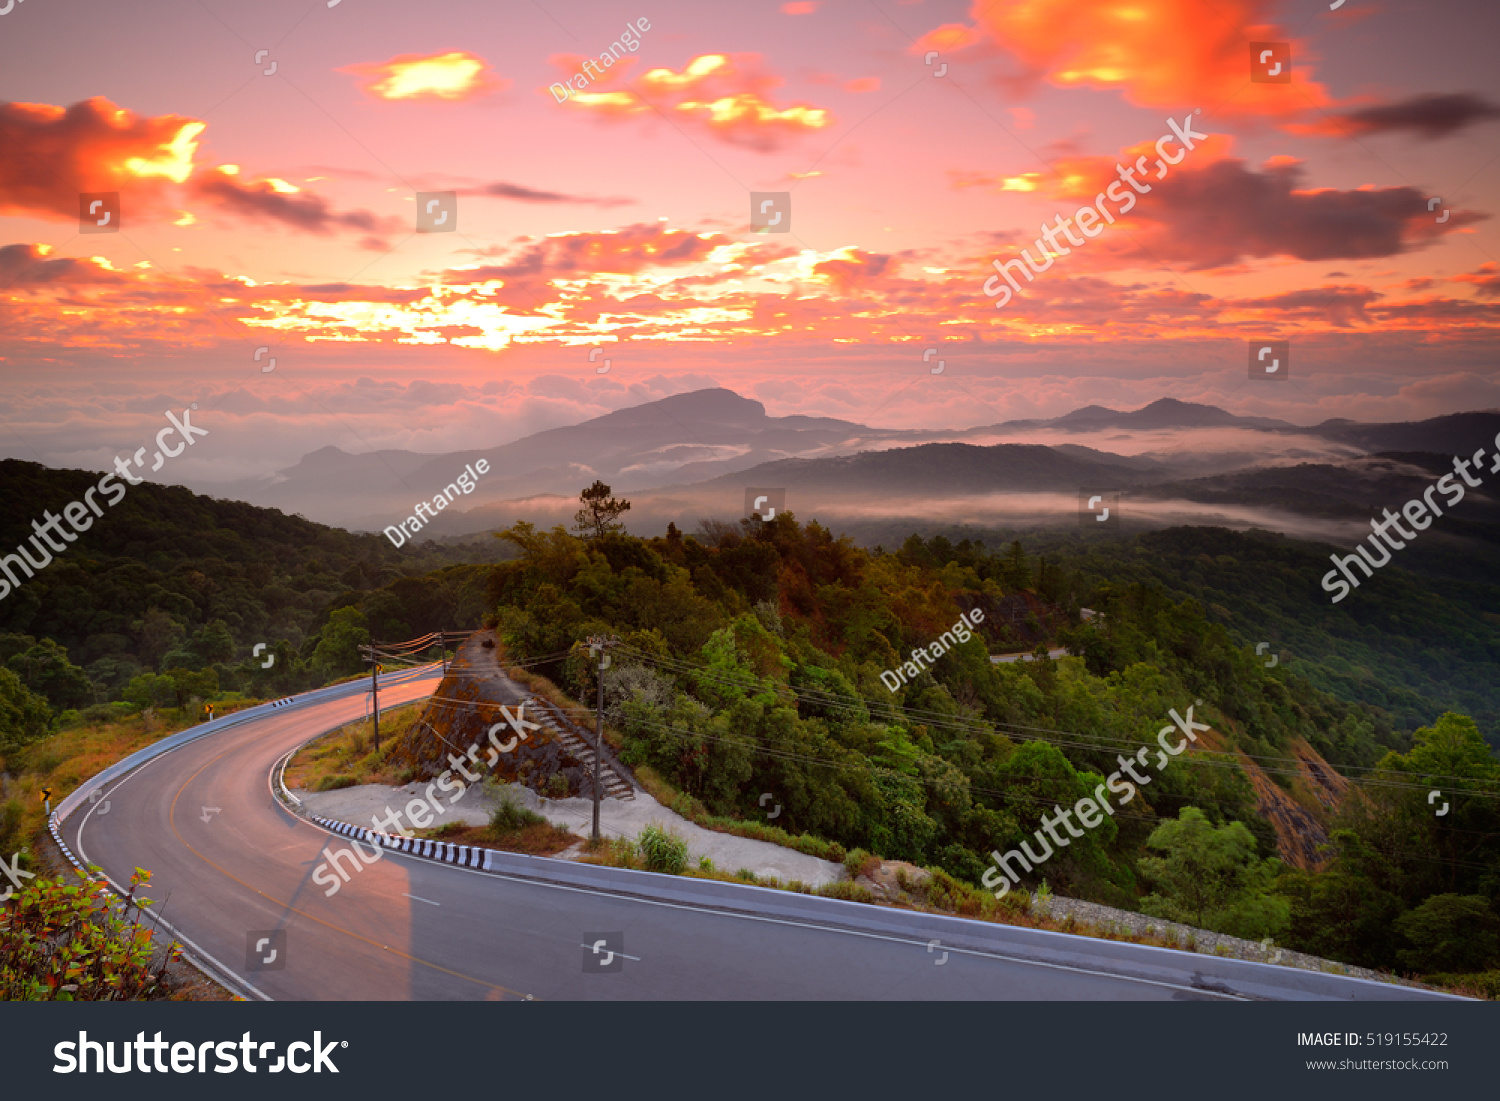 Mountain road view in Chiang Mai Thailand